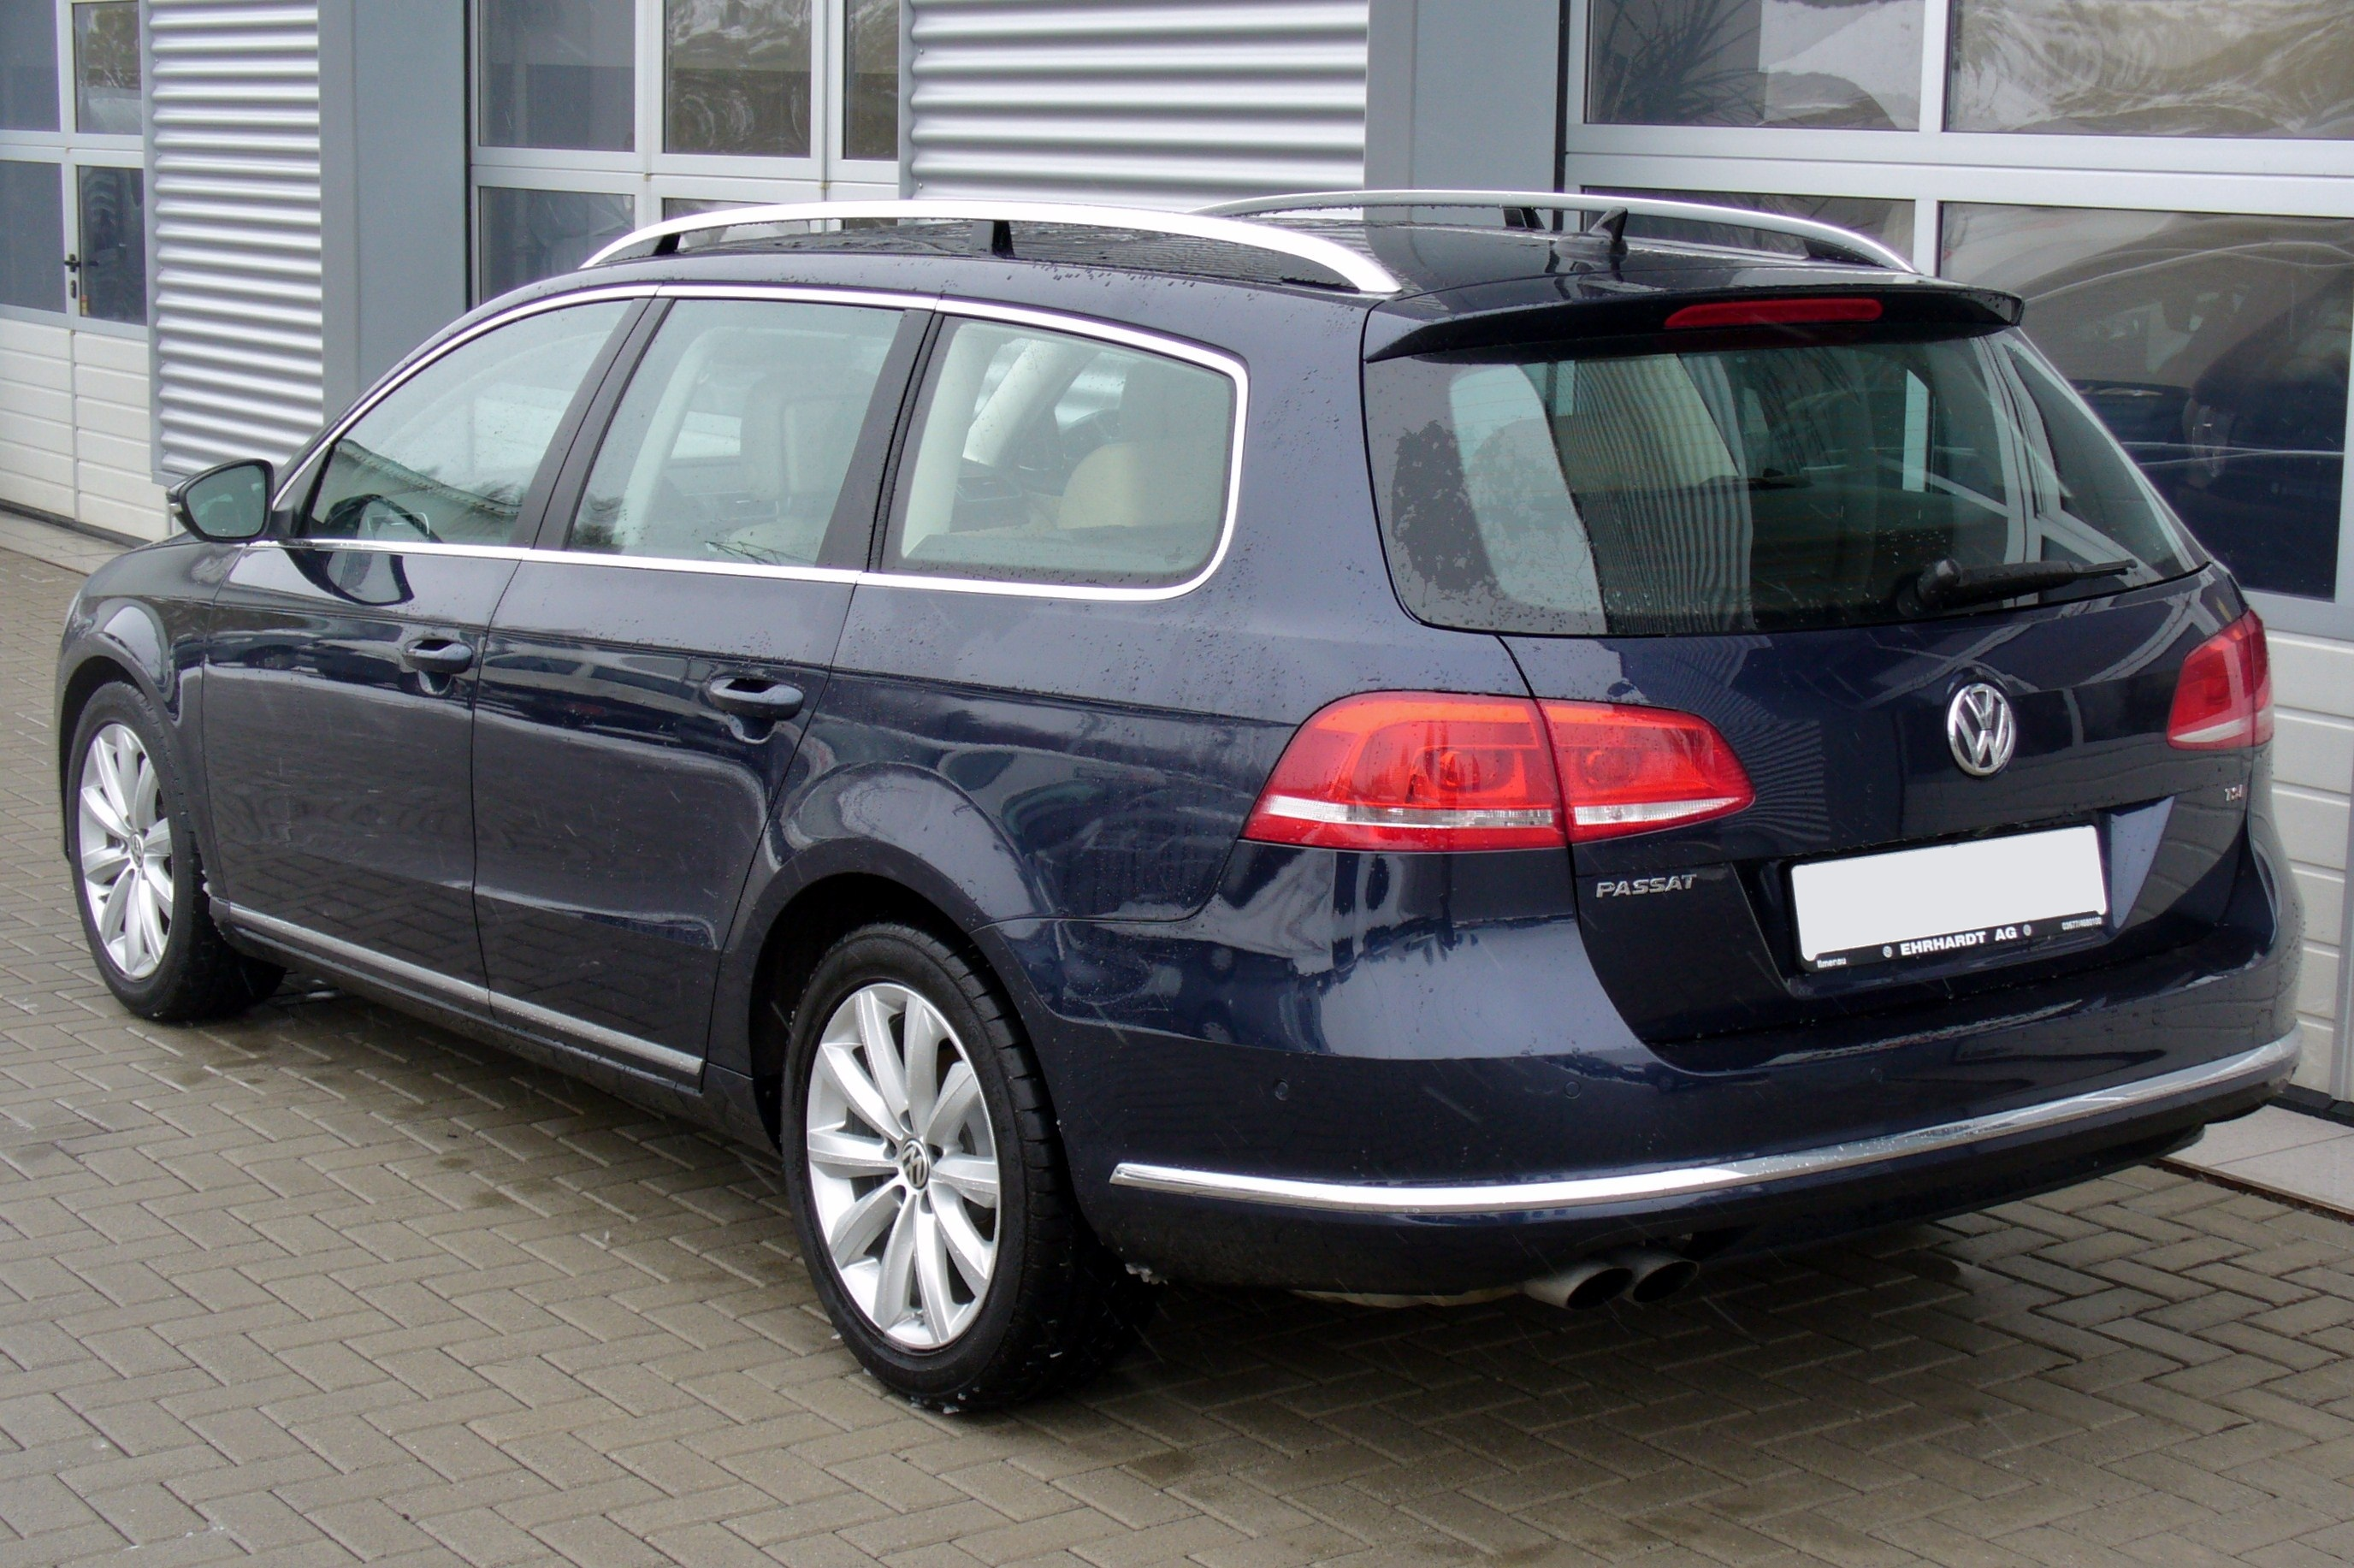 Audi A1 Coming To Usa >> 2014 Volkswagen Passat variant (b6) – pictures, information and specs - Auto-Database.com